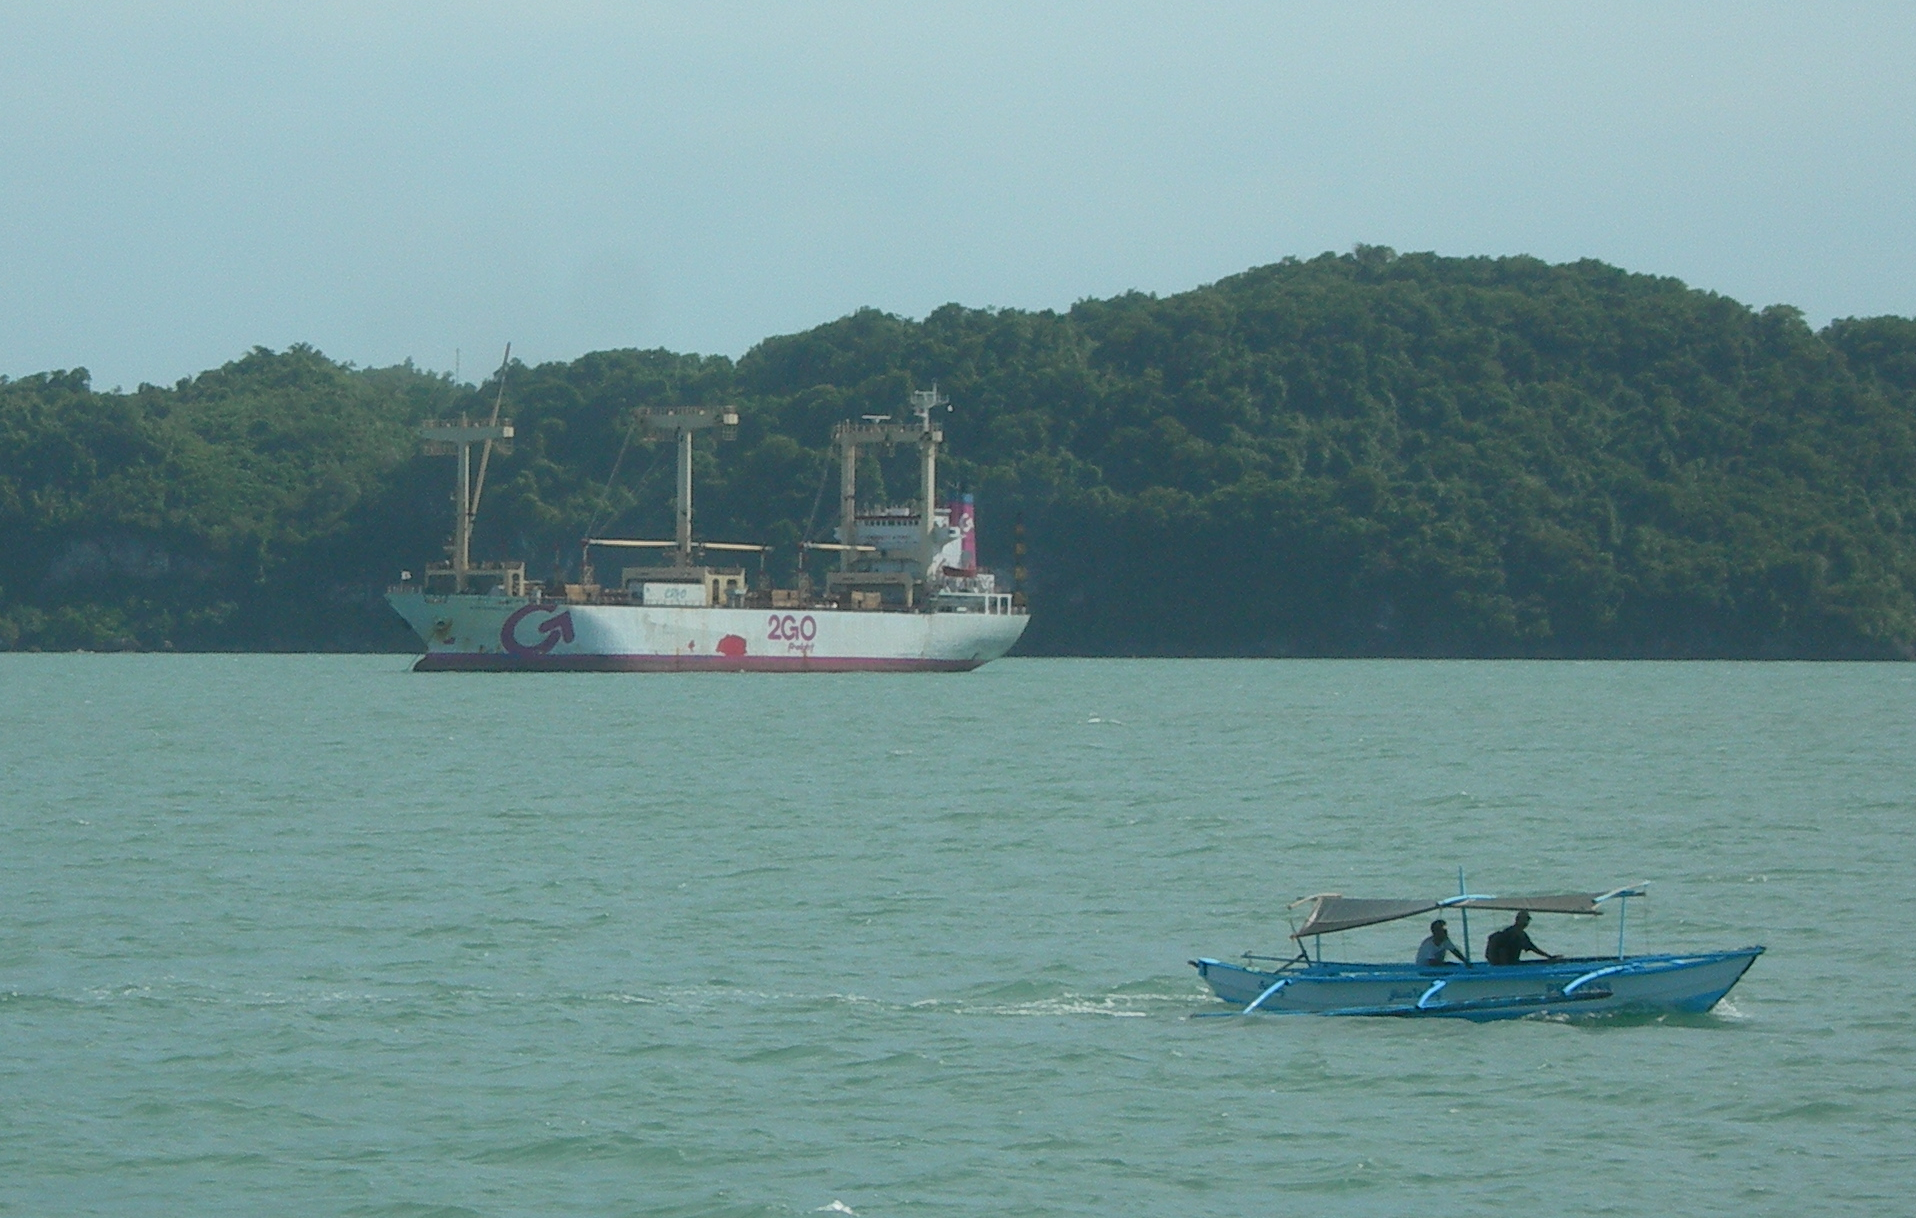 File:2GO Cargo Ship In Iloilo Strait With Pumpboat.png - Barko PNG